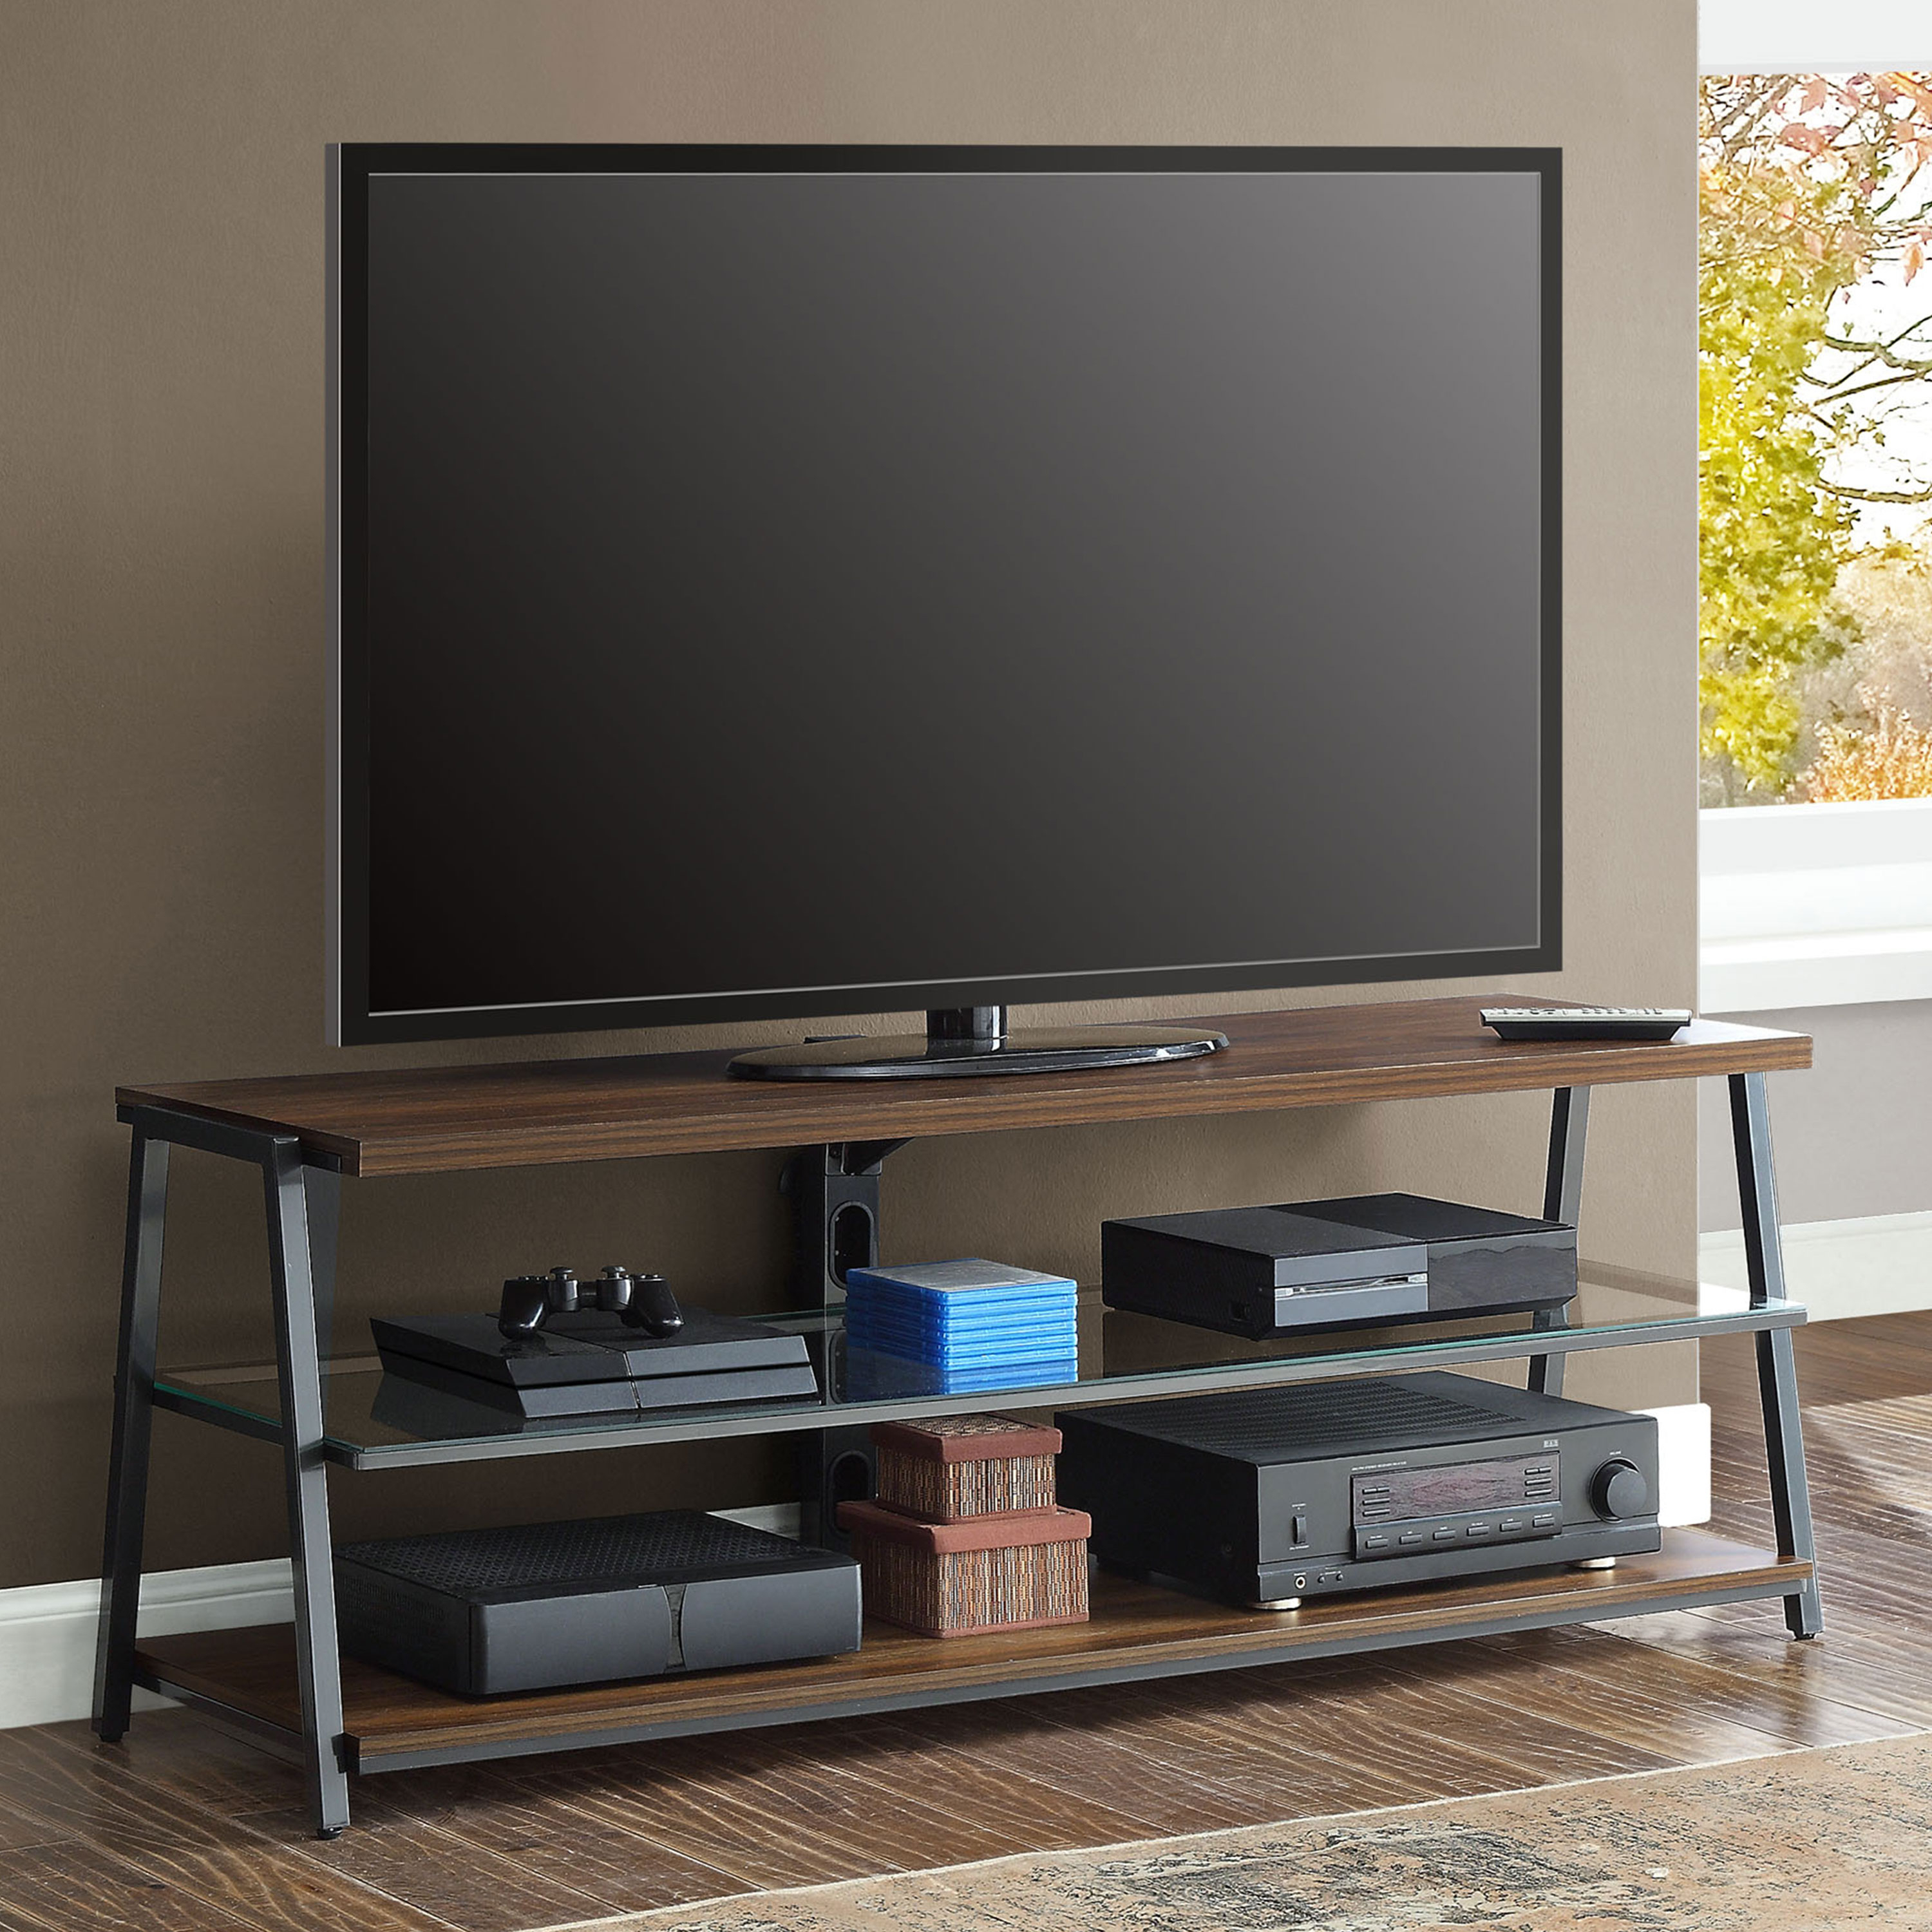 "Mainstays Arris Tv Stand For 70"" Flat Panel Tvs Up To 135 Lbs with Canyon 64 Inch Tv Stands (Image 16 of 30)"